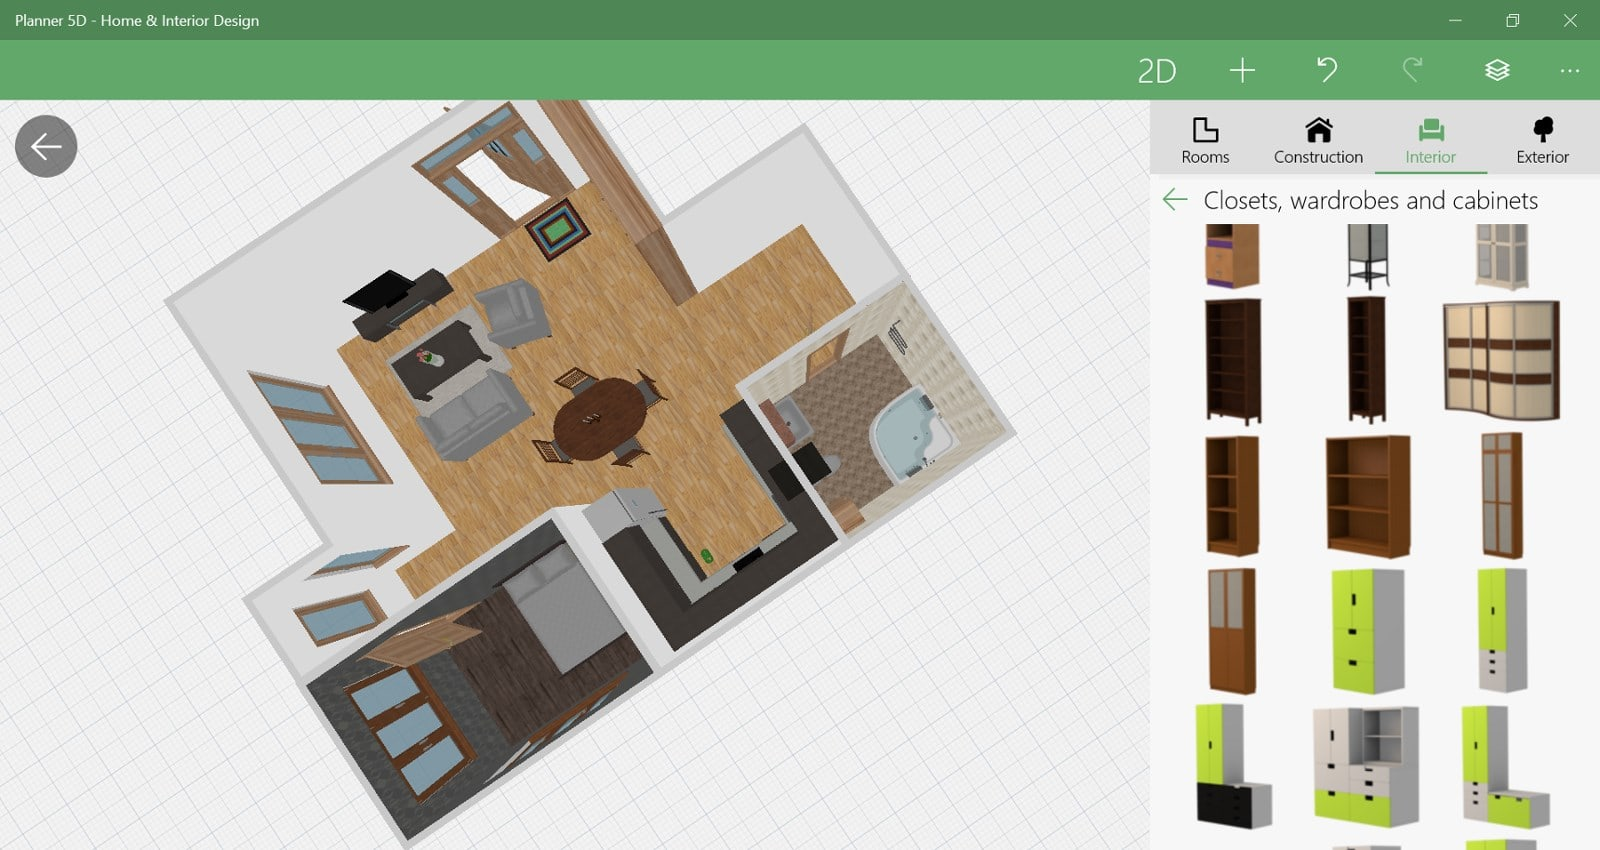 3d Home Design Software Offline Planner 5d Home U0026 Interior Design  Download